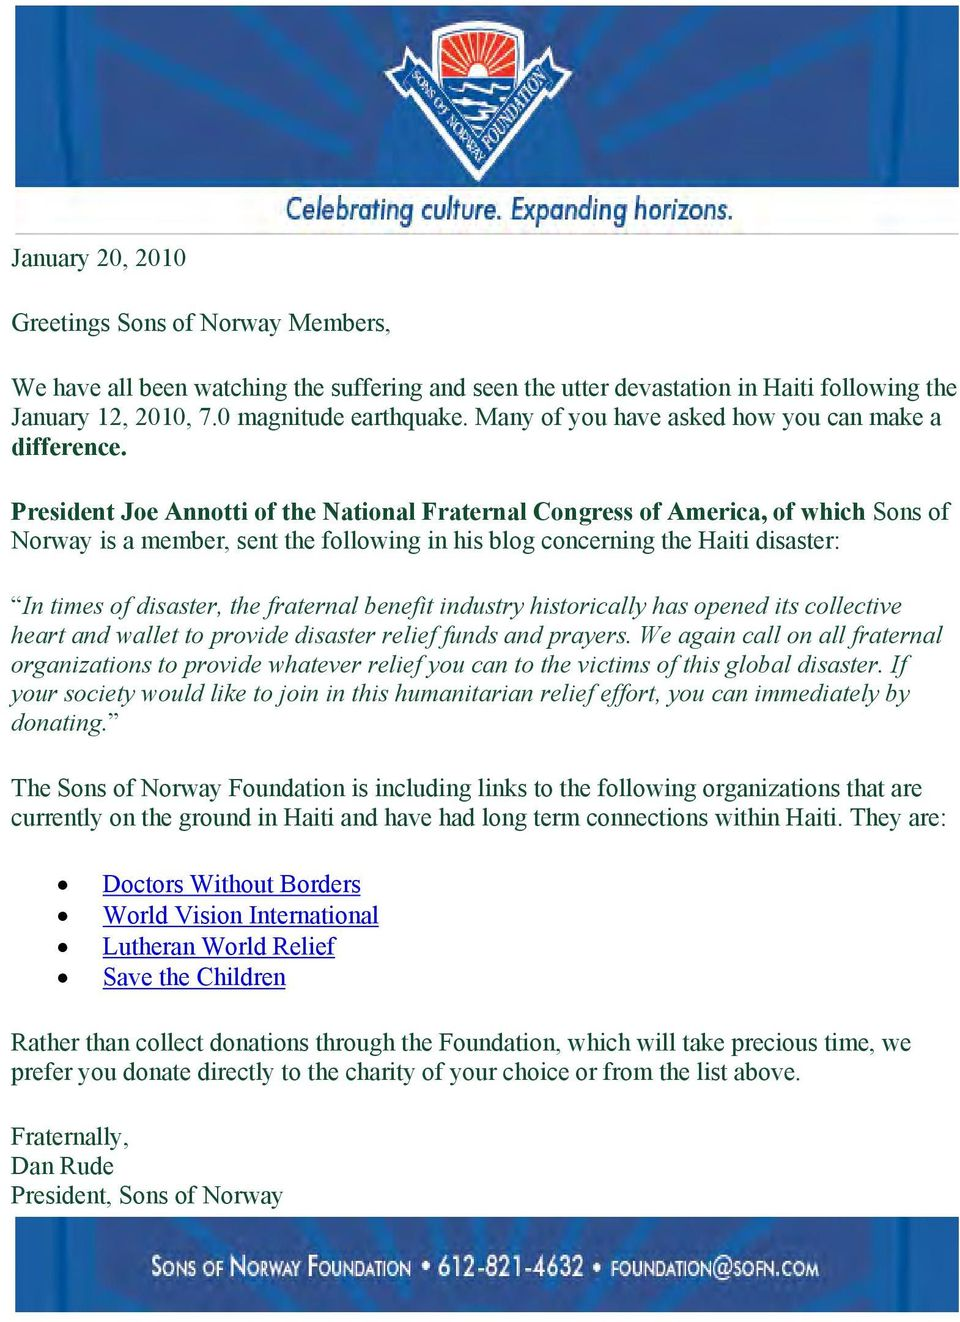 President Joe Annotti of the National Fraternal Congress of America, of which Sons of Norway is a member, sent the following in his blog concerning the Haiti disaster: In times of disaster, the